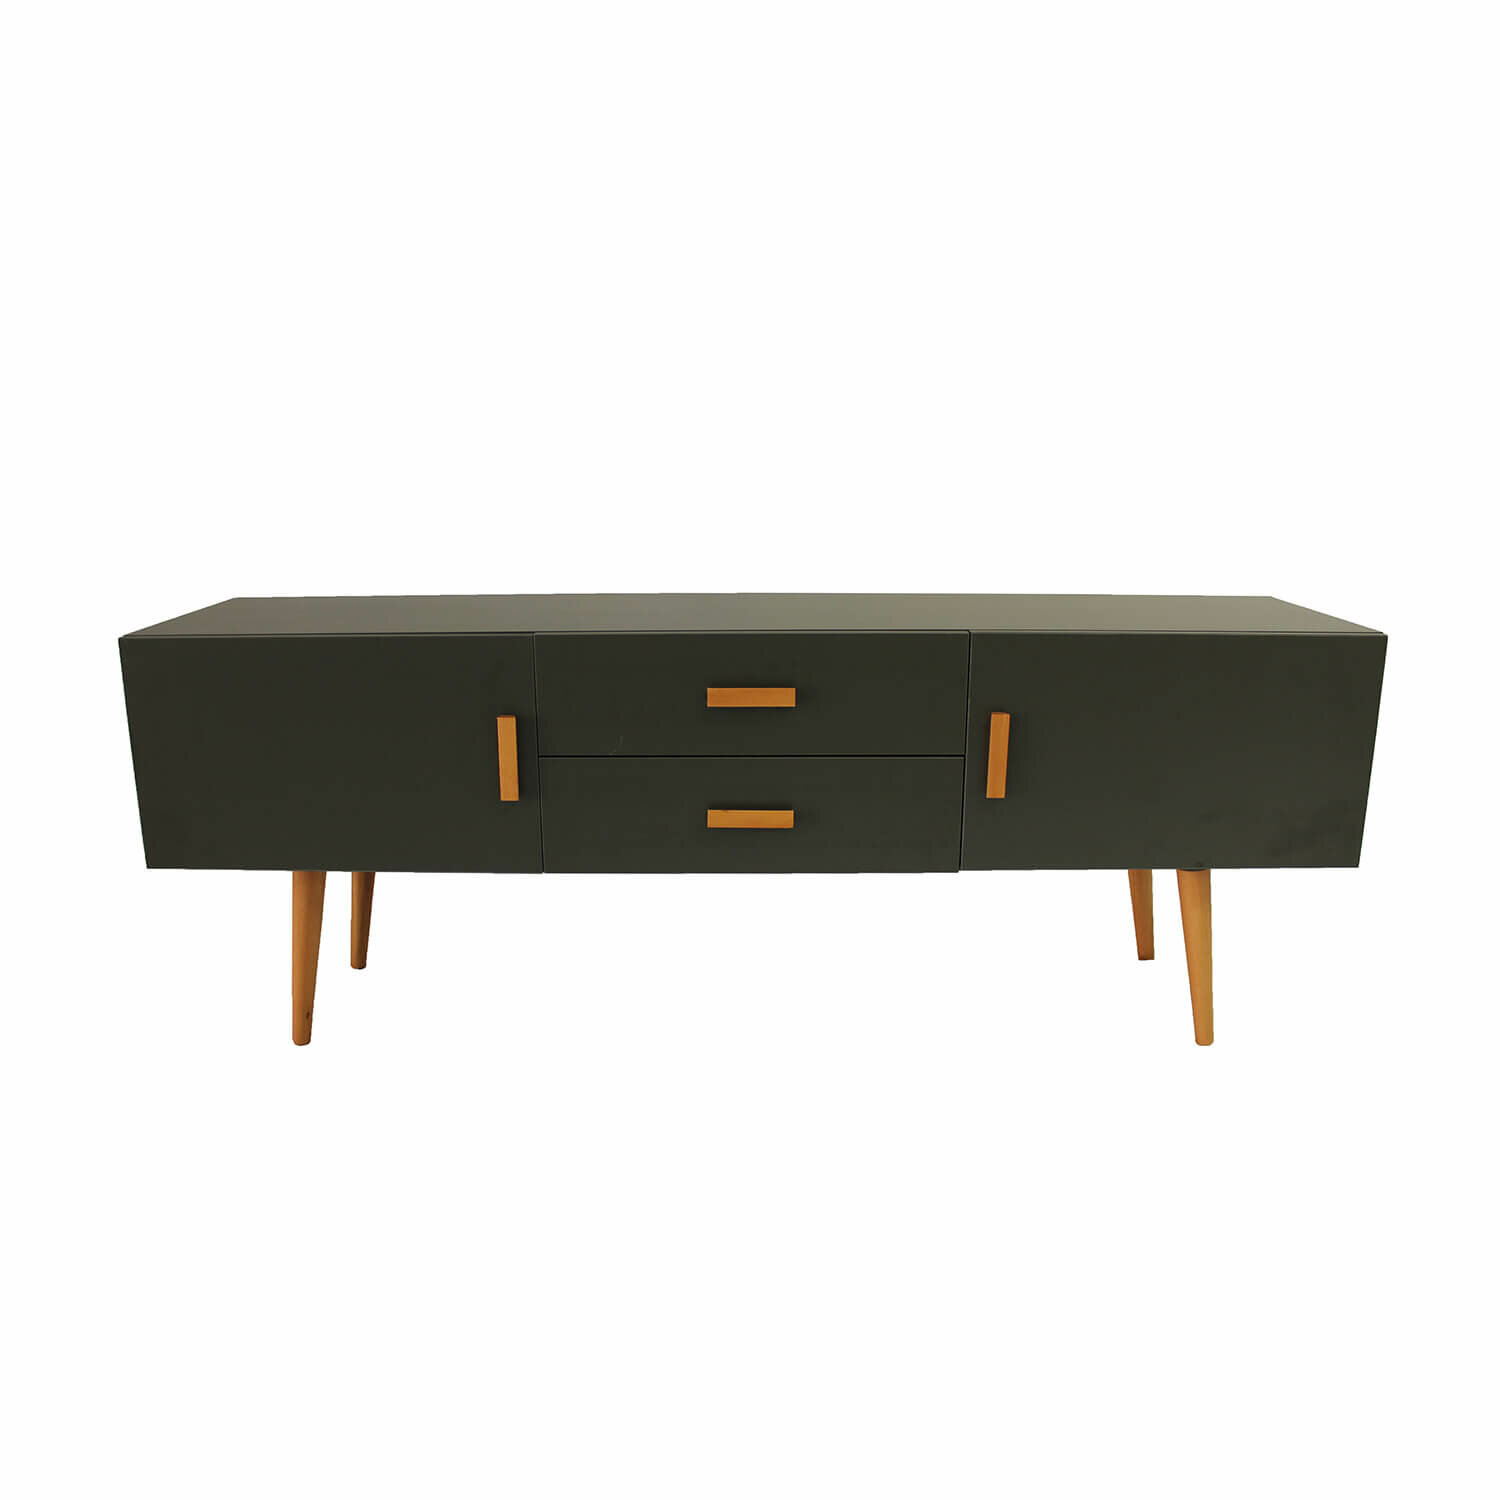 Corrigan Studio Folkeste Mid Century Modern Tv Stand For Tvs Up To